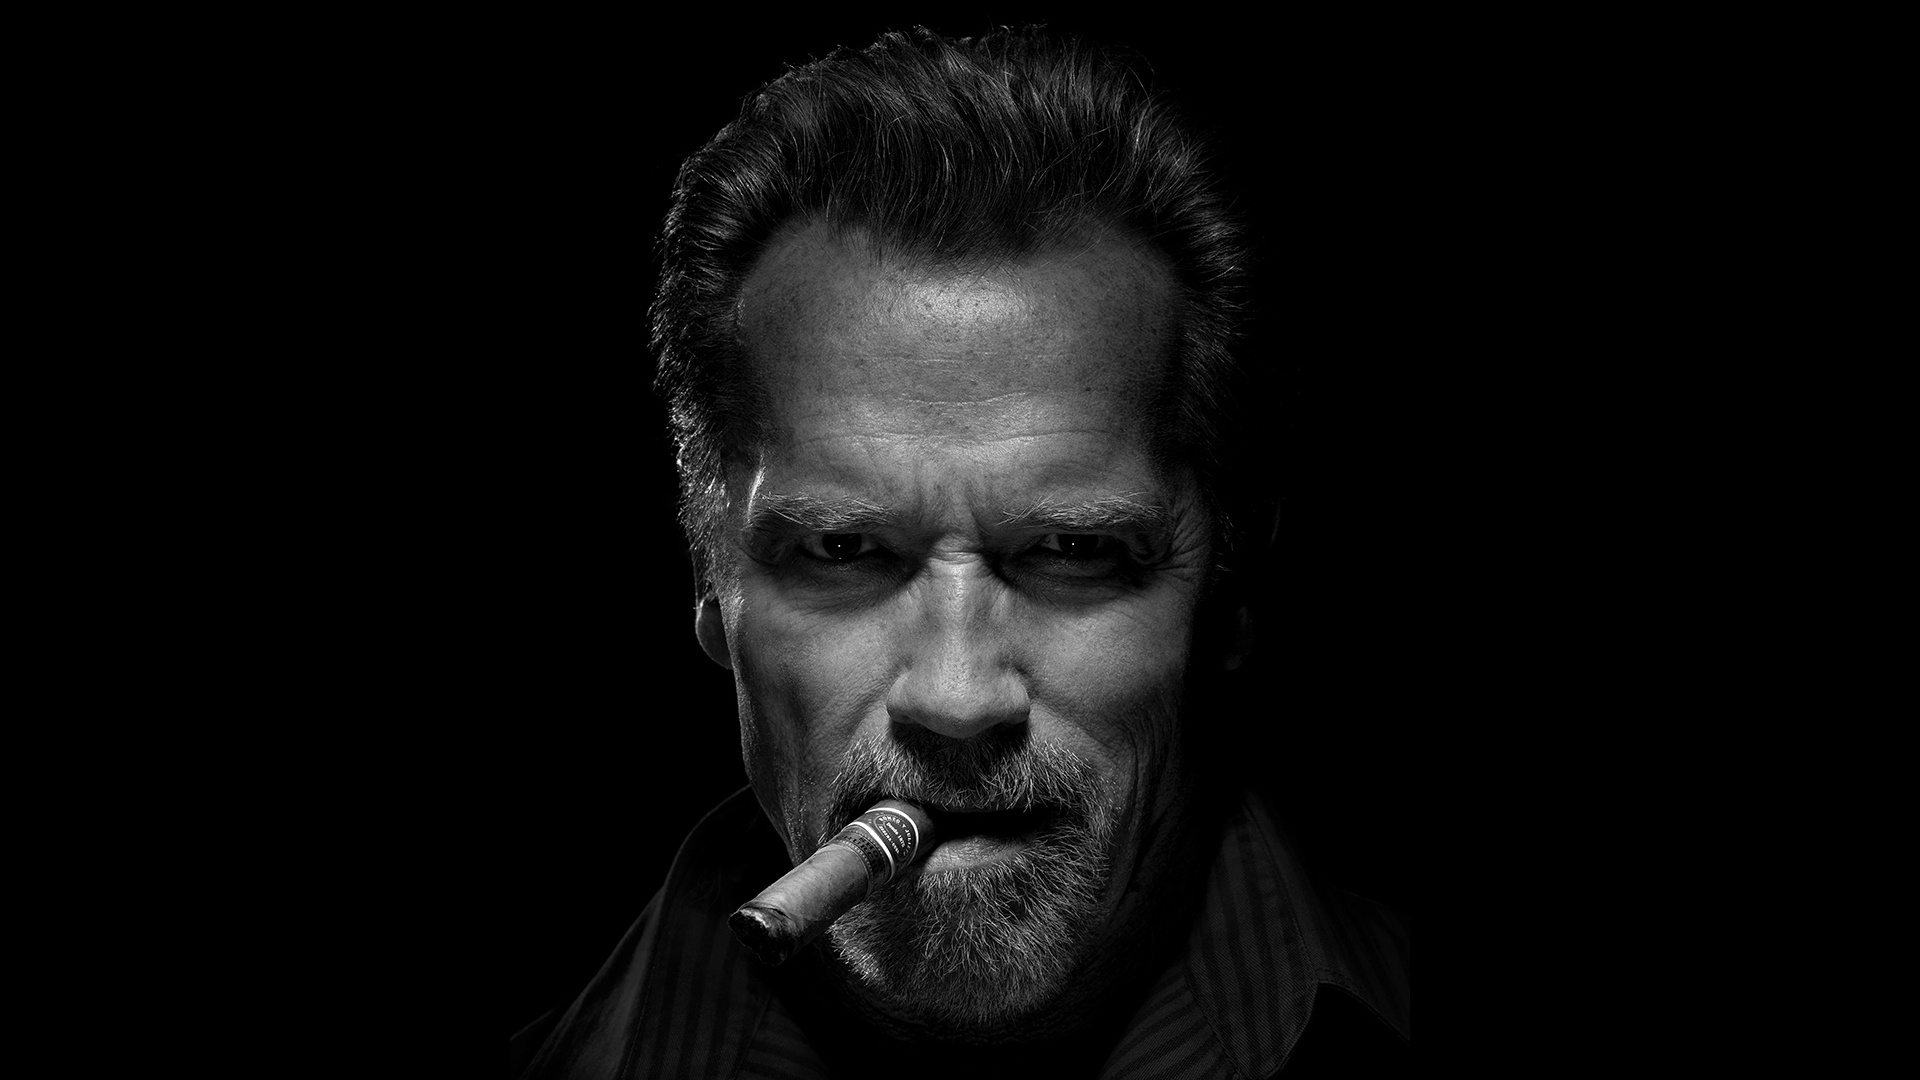 arnold schwarzenegger wallpapers, pictures, images